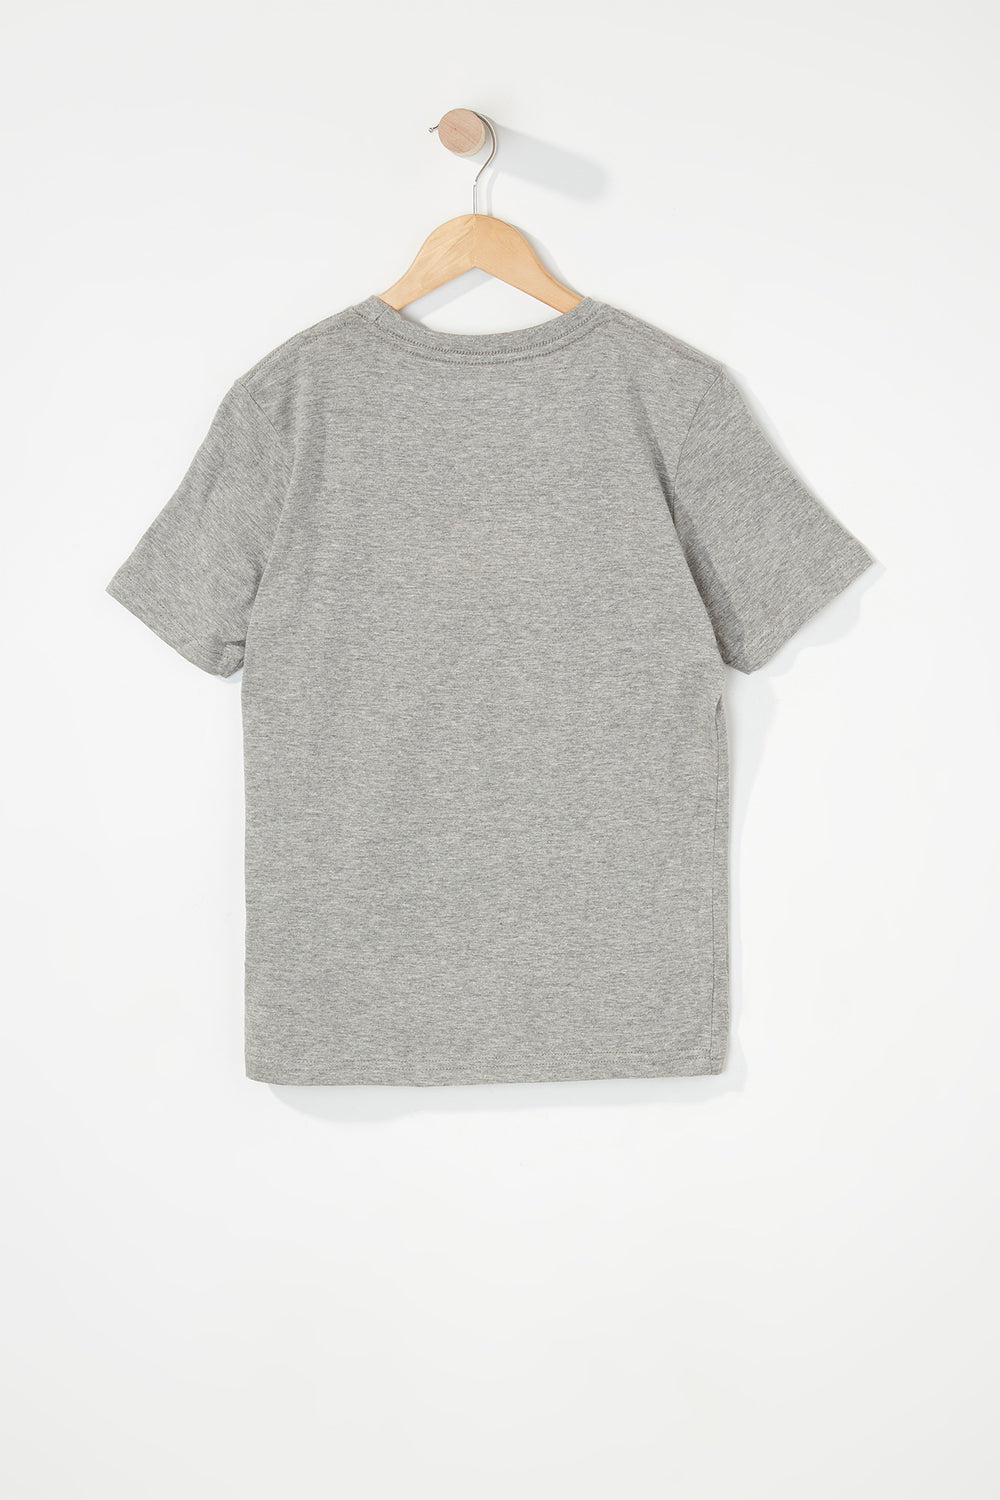 Zoo York Boys Patch Logo T-Shirt Heather Grey